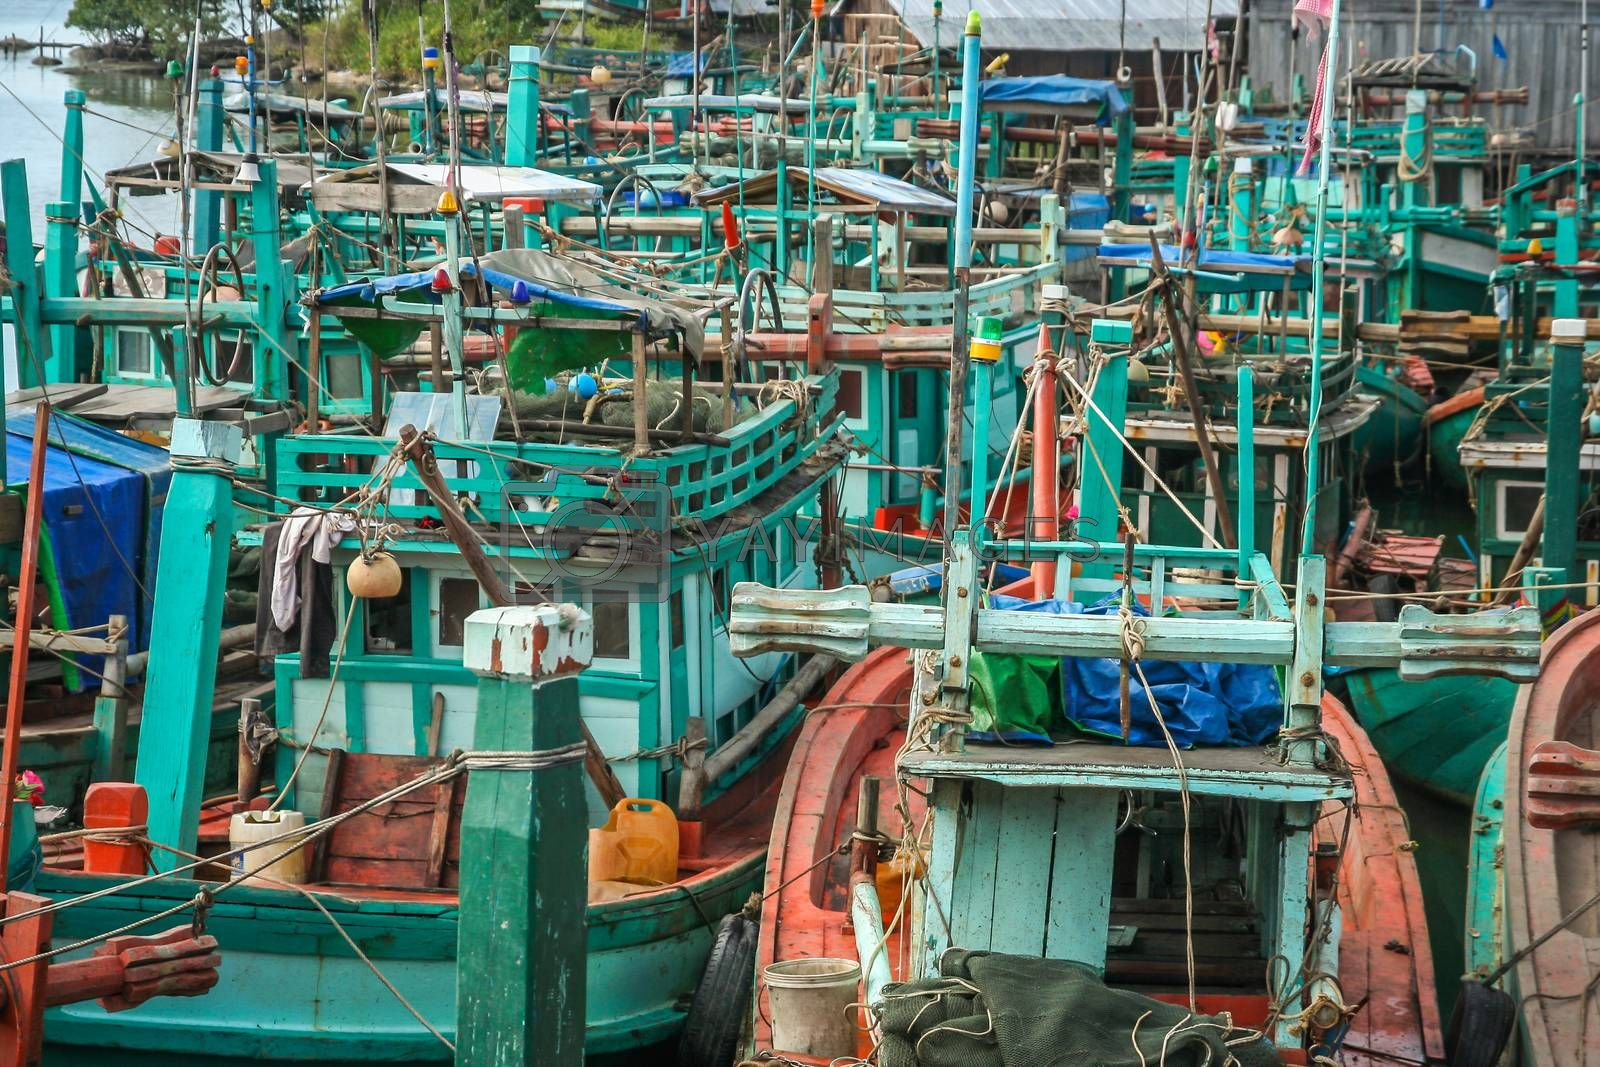 Old fishing boats in a small Cambodian seaside village